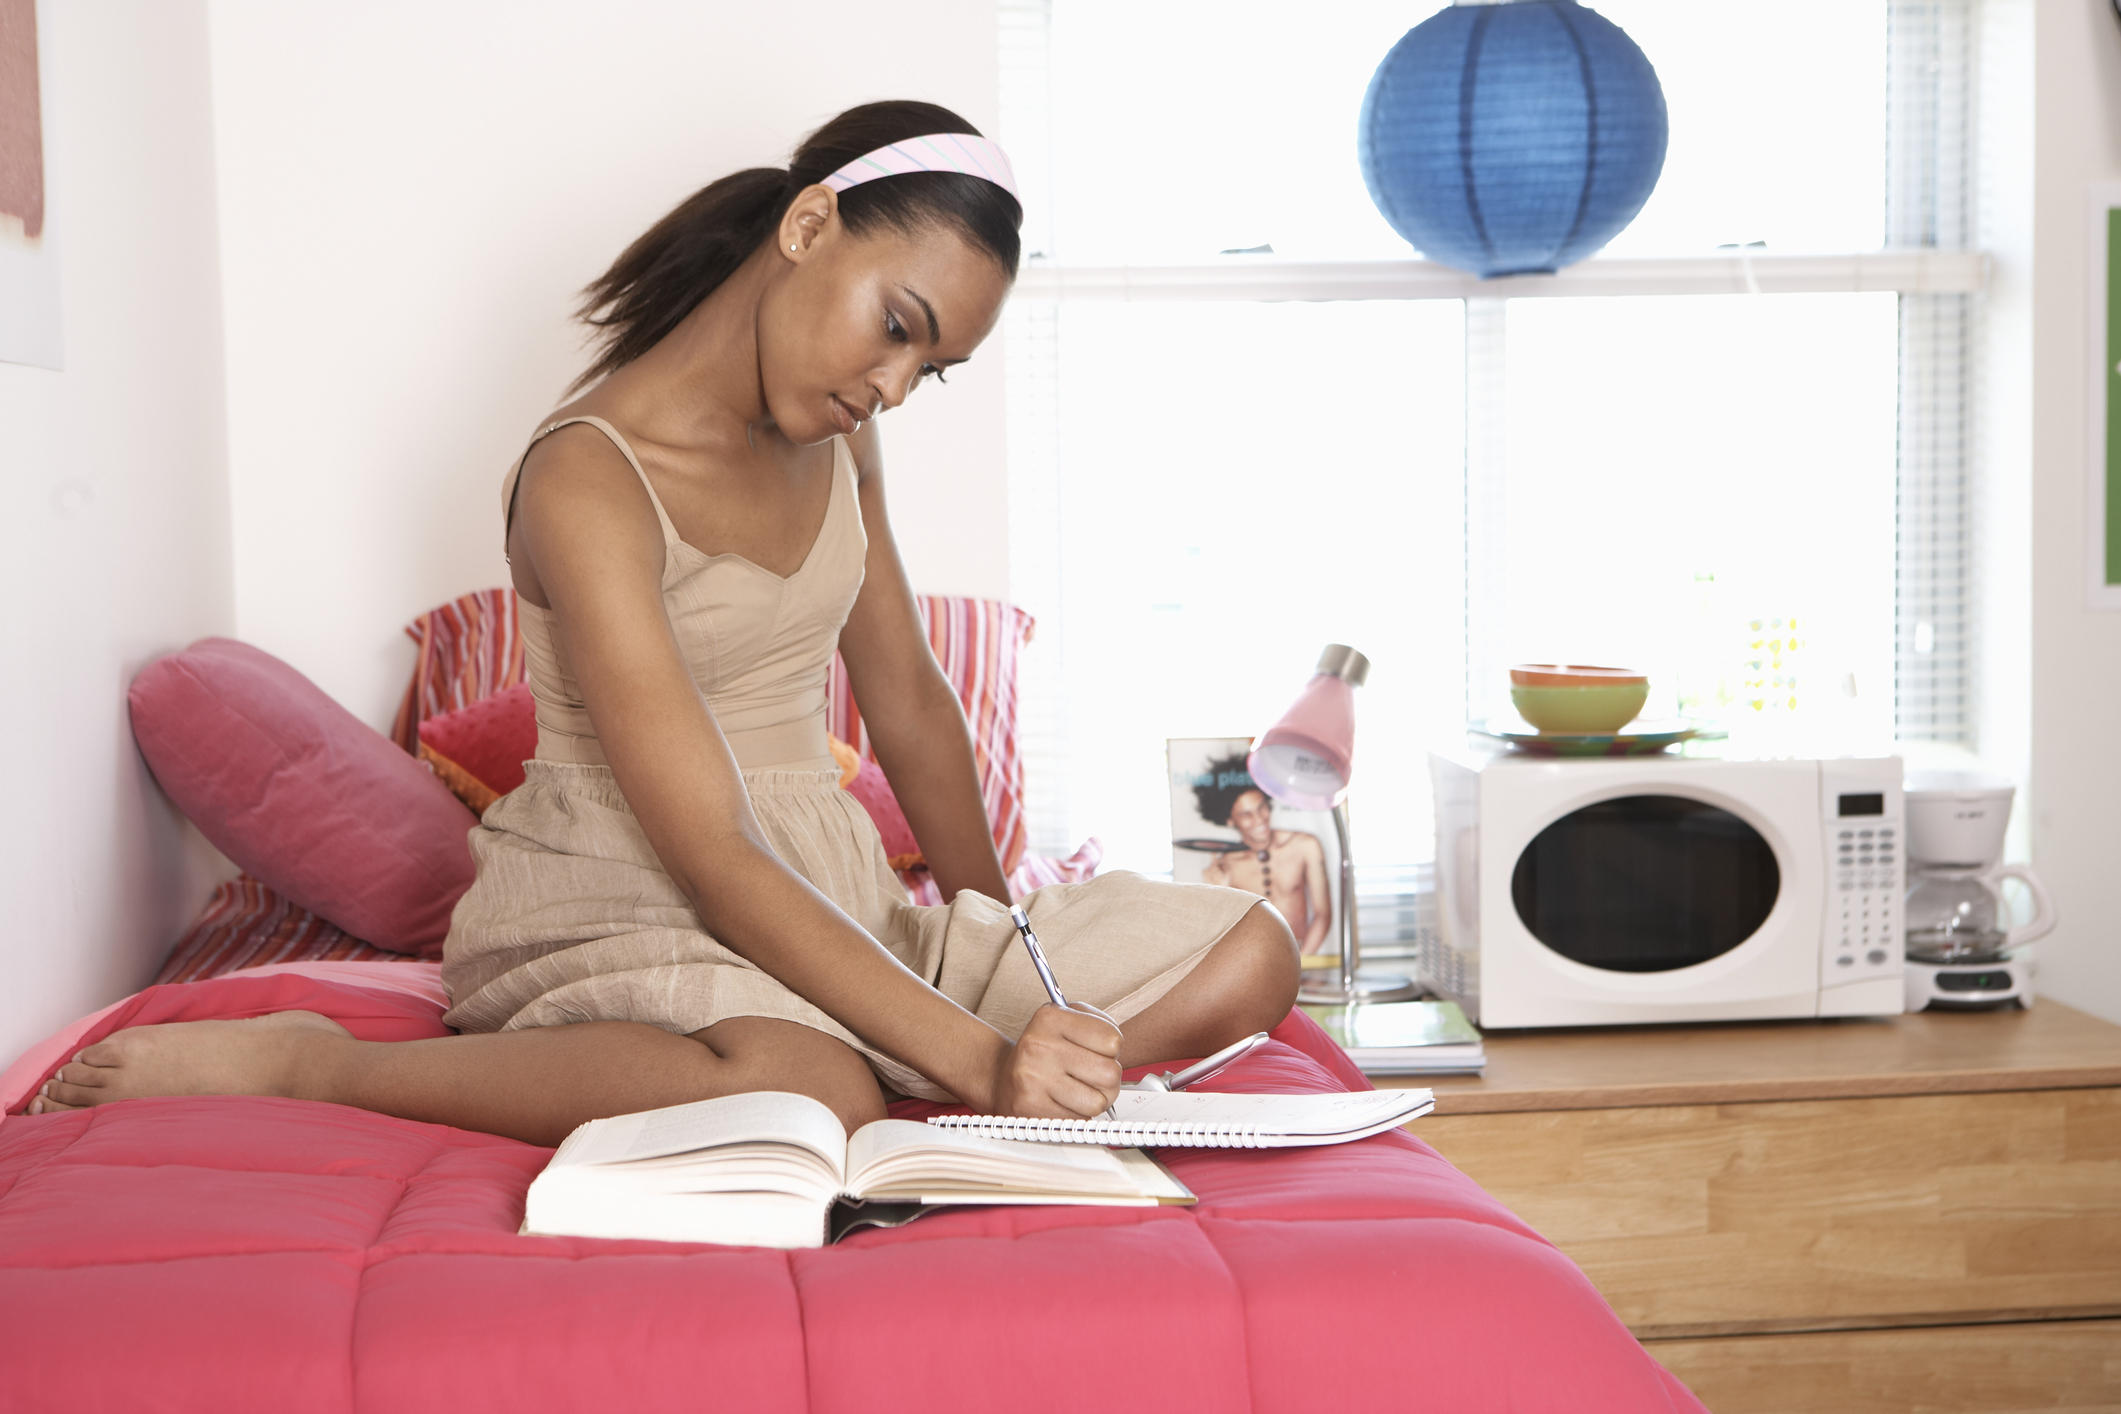 Young woman writing in notebook on bed in dorm room